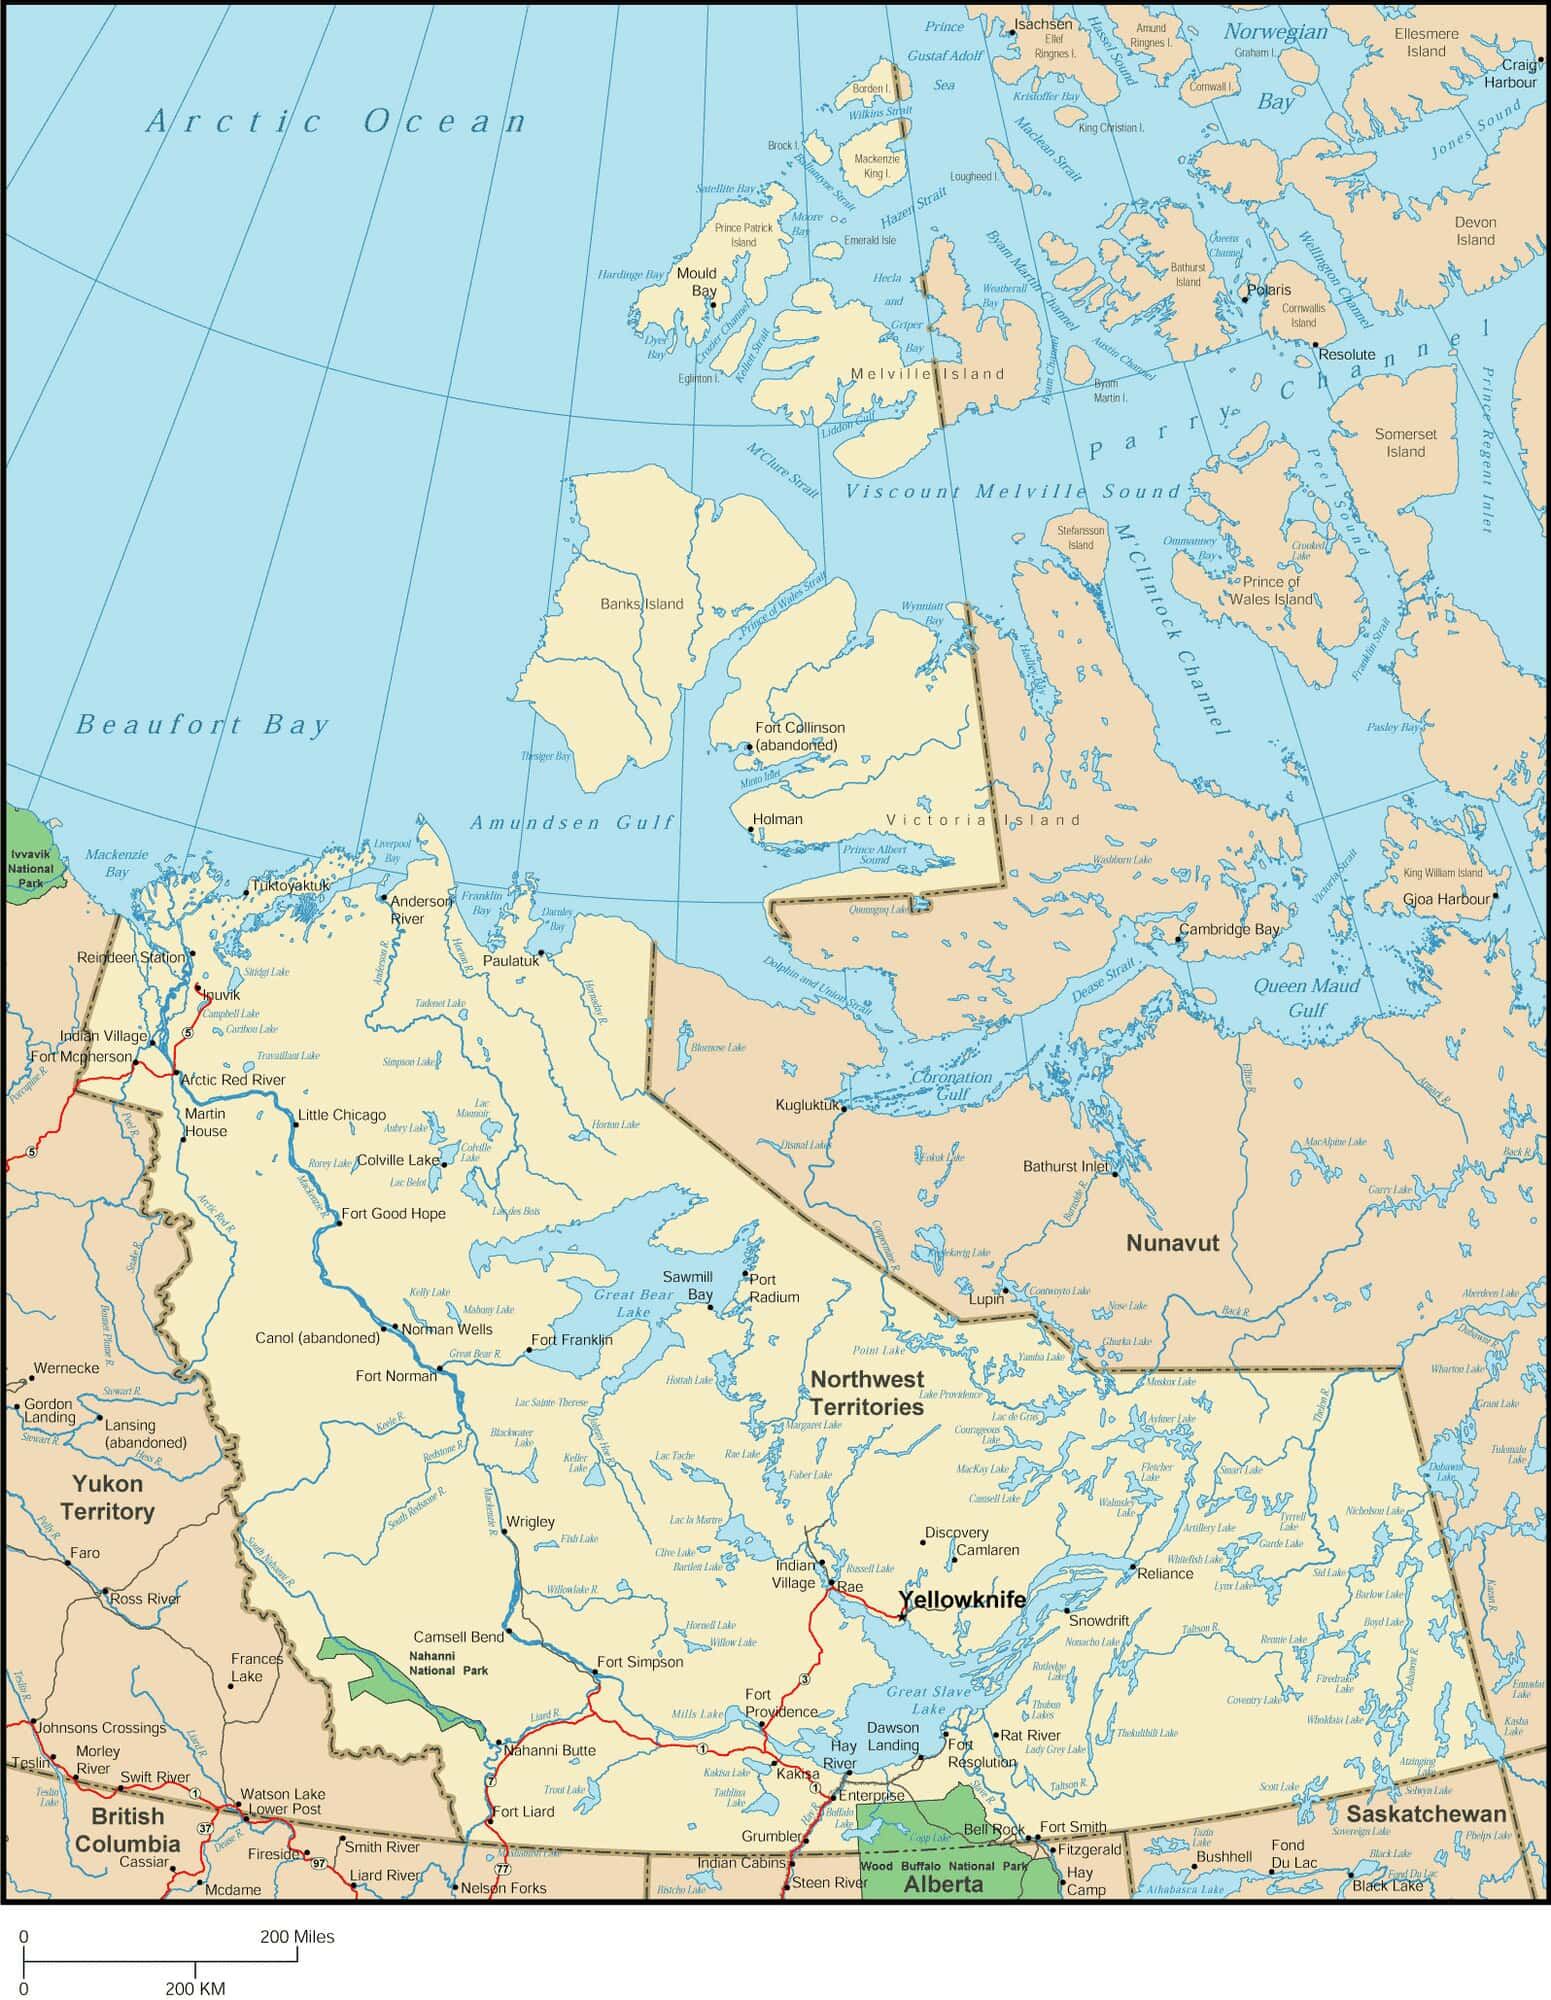 you may print this detailed northwest territories map for personal non commercial use only for enhanced readability use a large paper size with small